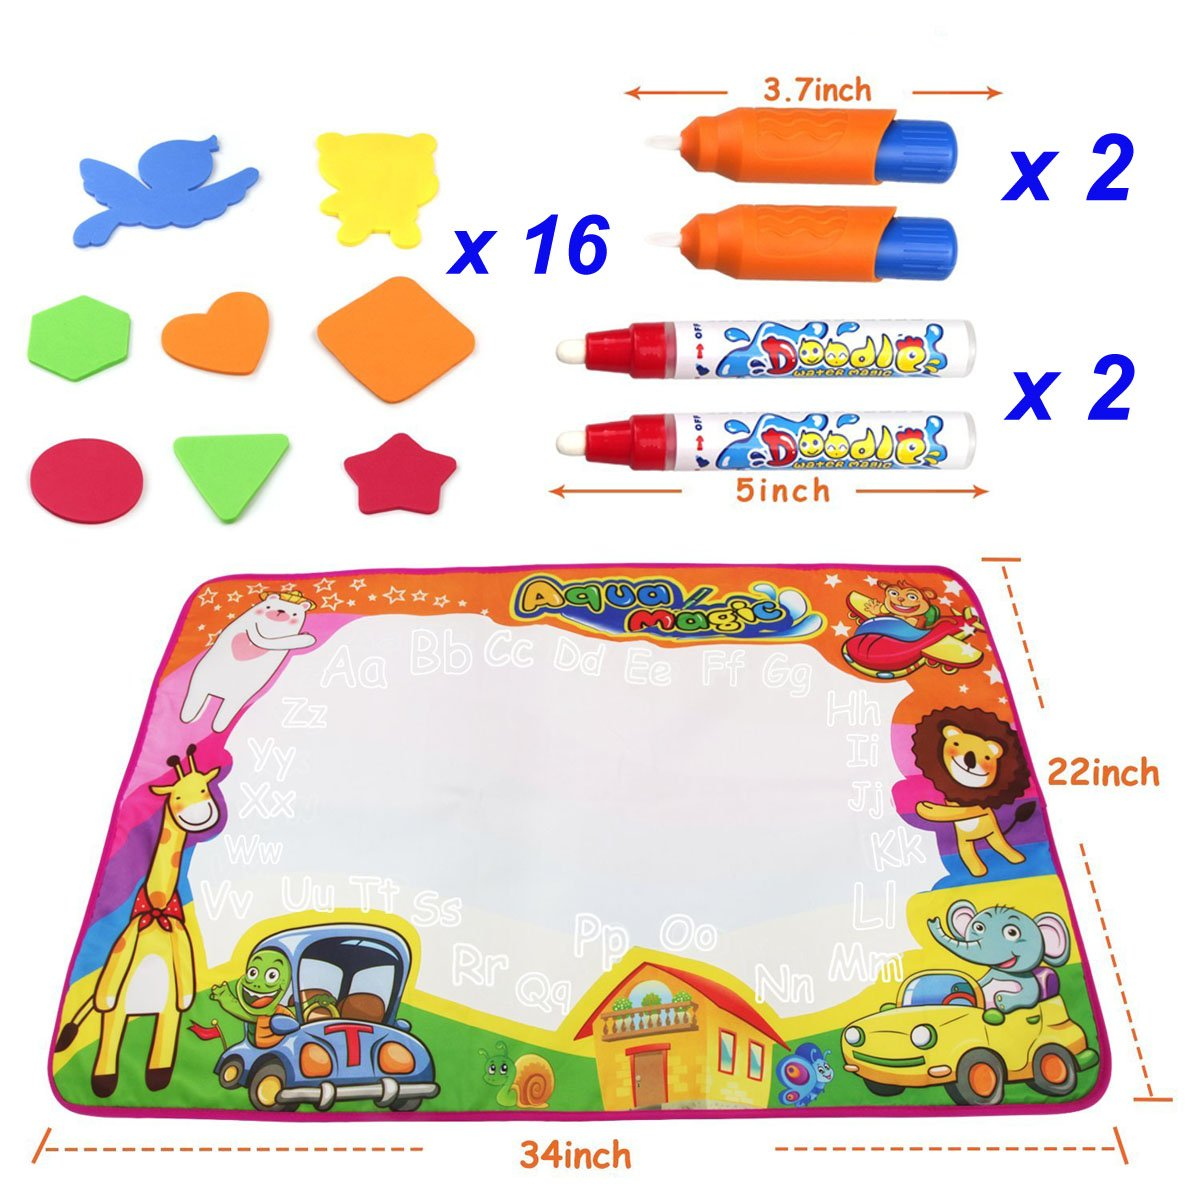 Notebooks & Writing Pads 100% Quality 1pcs Children Doodle Stencil Writing Painting Magnetic Drawing Board Set For Kids Learning & Education Toys Hobbies Clipboard